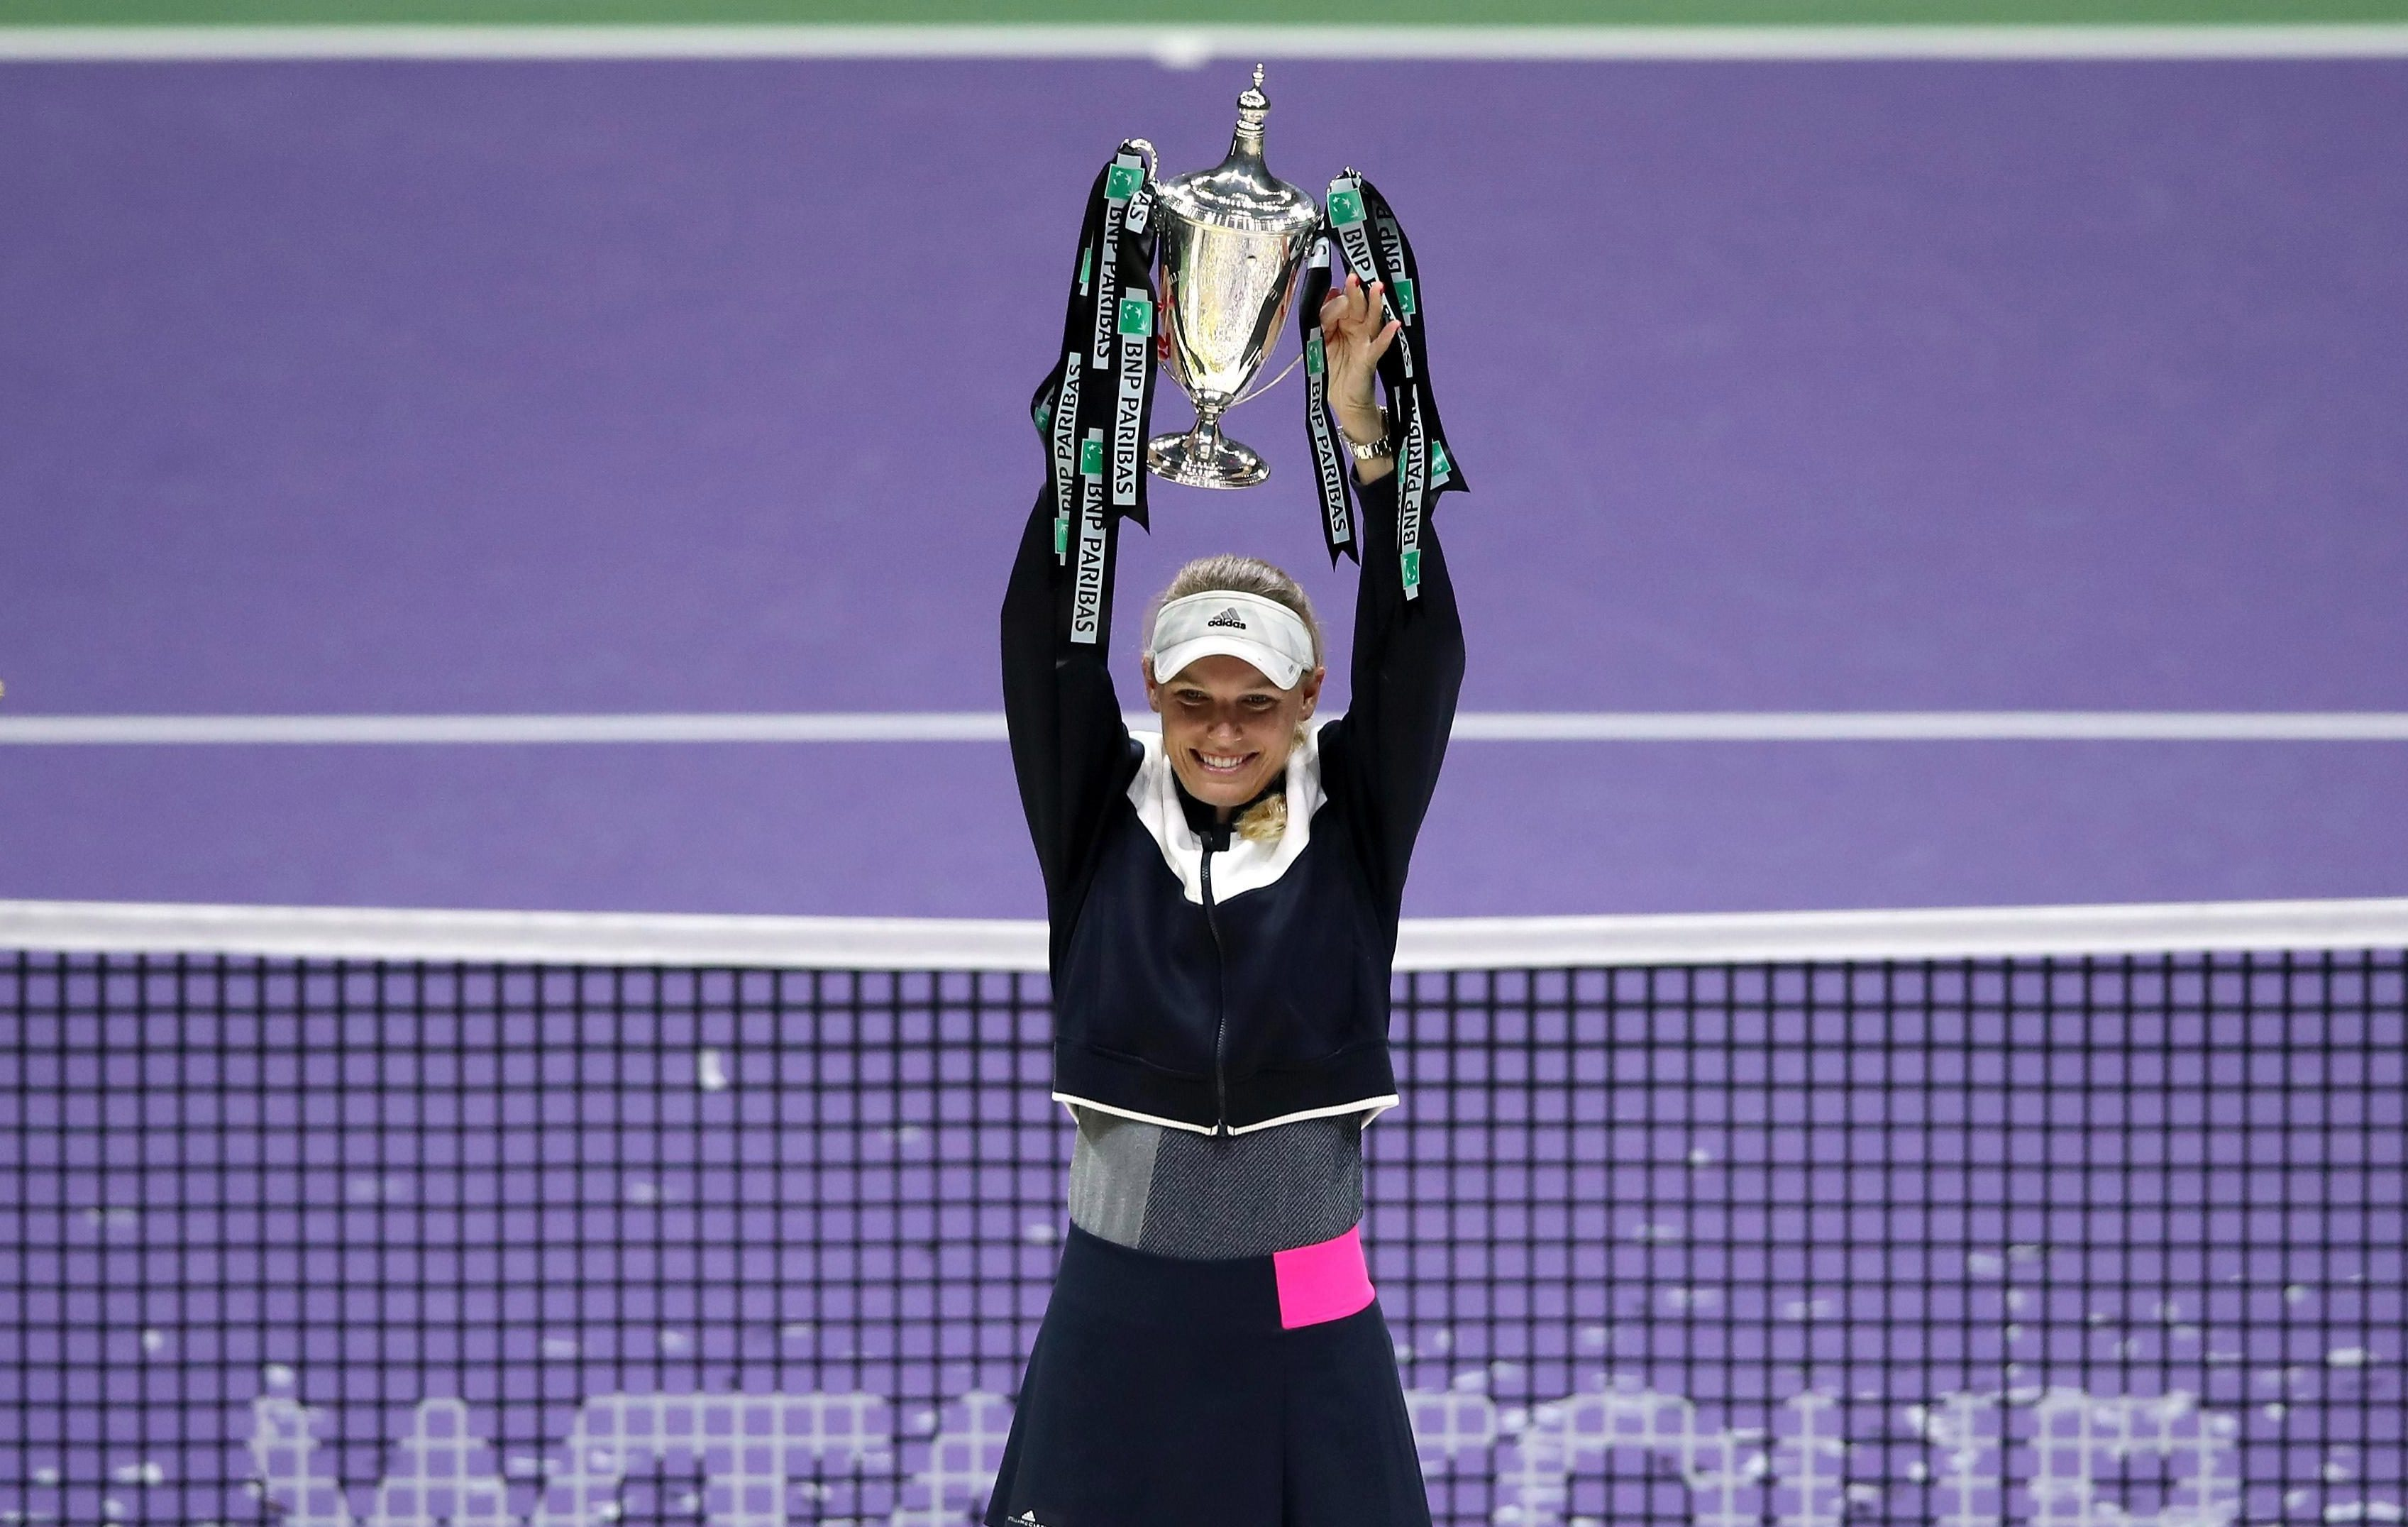 Carolina Wozniacki won the singles final 6-4,6-4 against Venus Williams